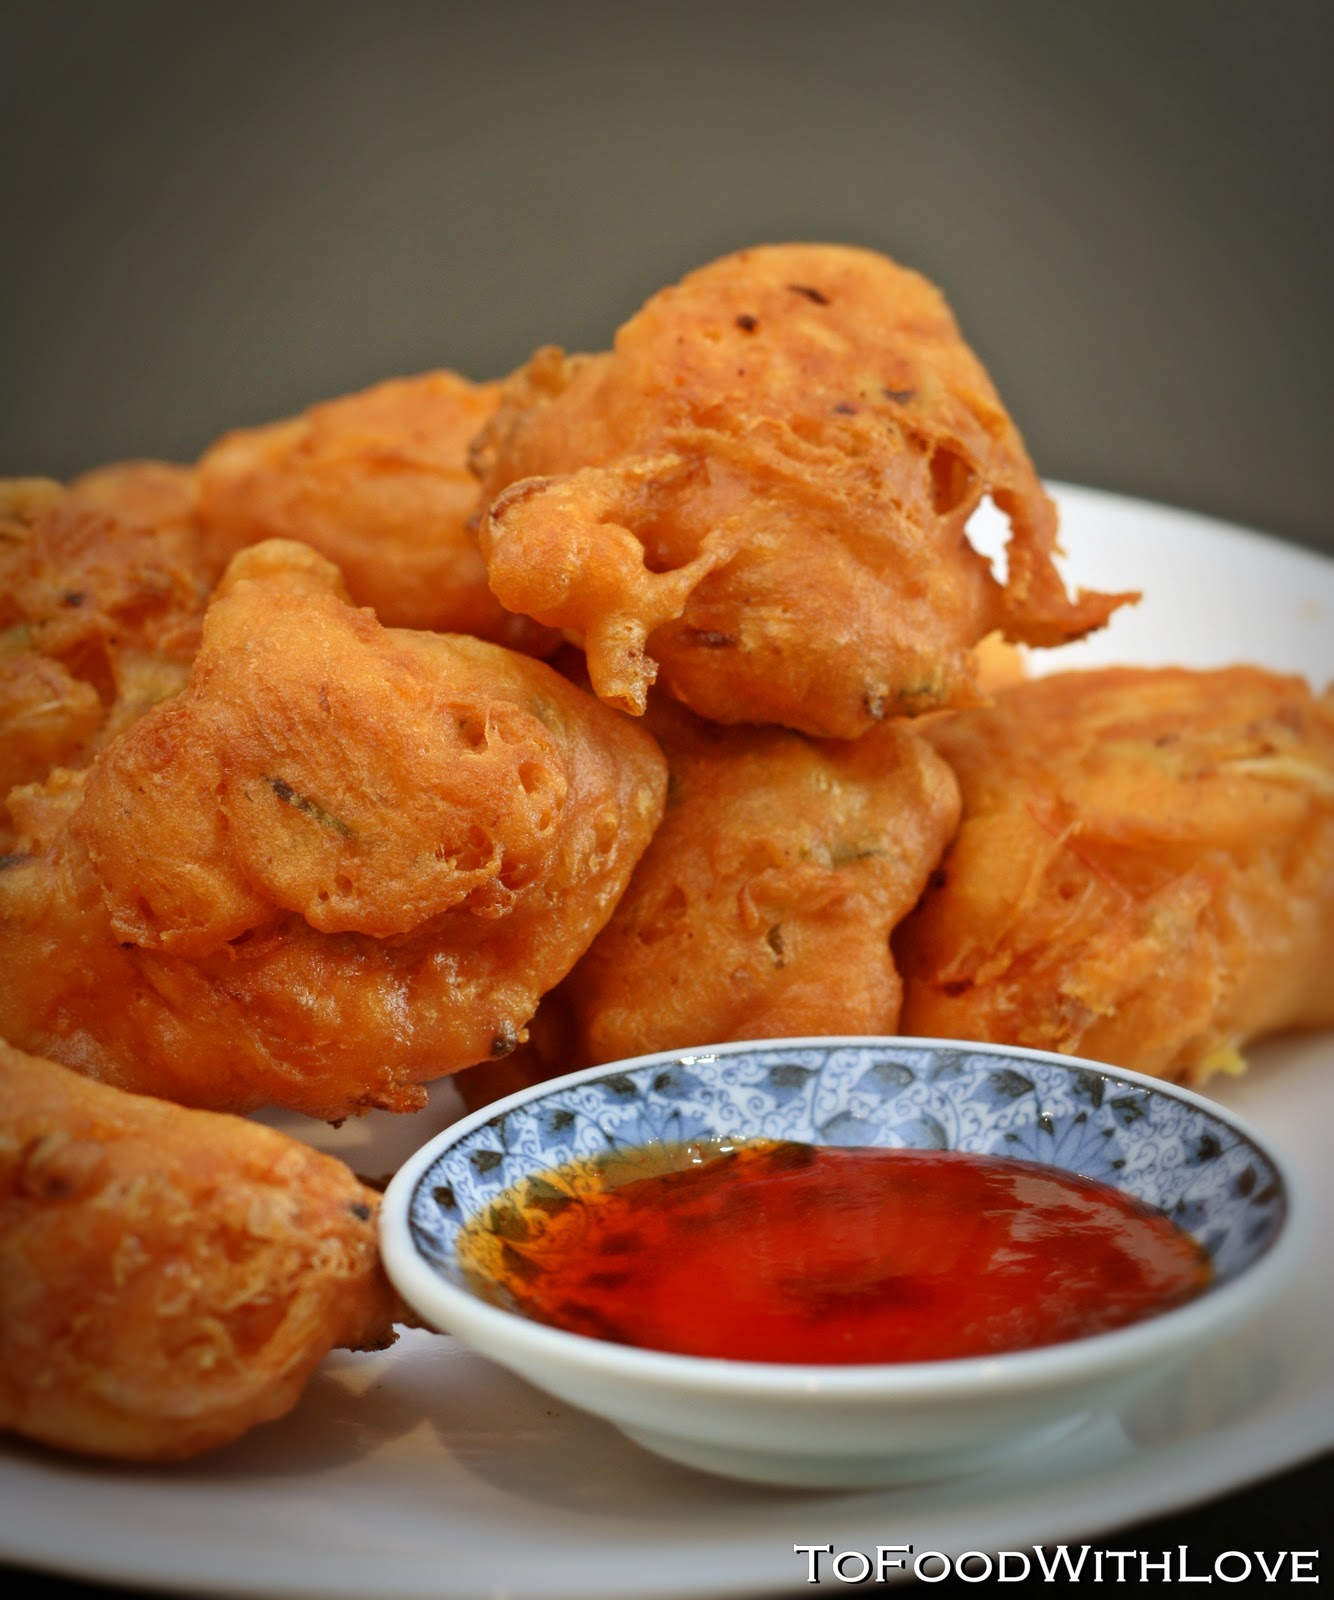 ... was nice and cucur udang prawn fritters cucur udang prawn fritters